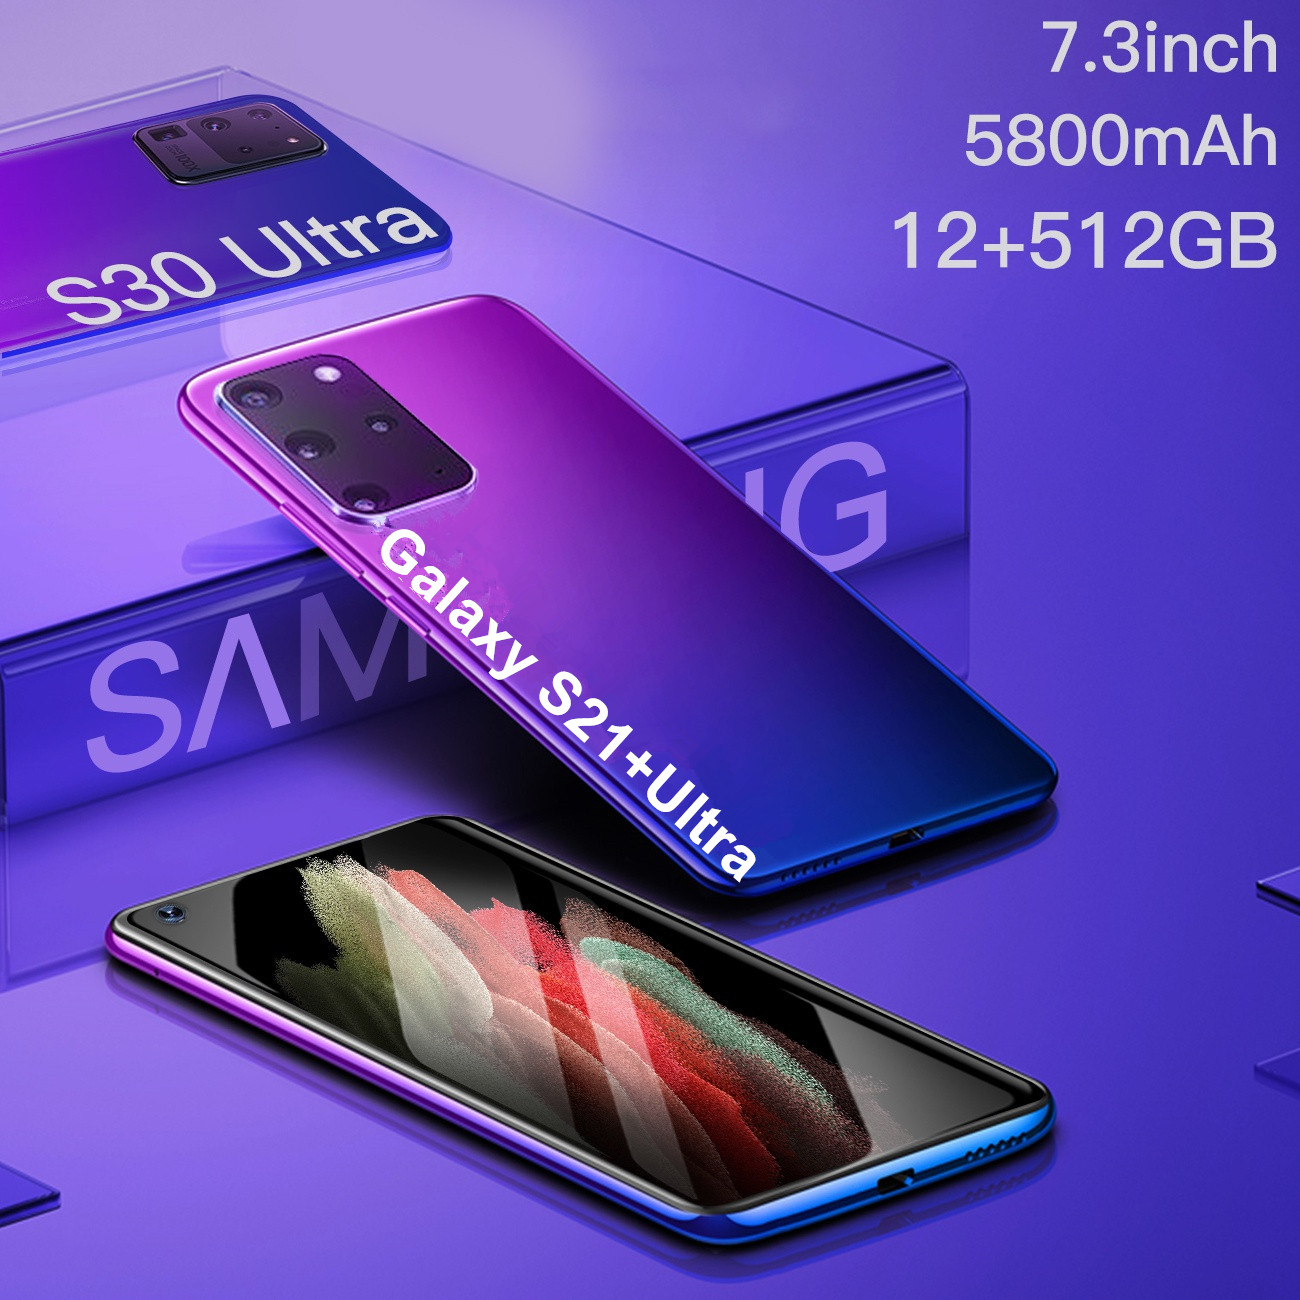 Galay S21+ Ultra 5G 7.3 Inch Smartphone 5000mAh Aandroid 10.0 Unlock Global Version 16MP+32MP 12GB+512GB Mobile Phone Telefon